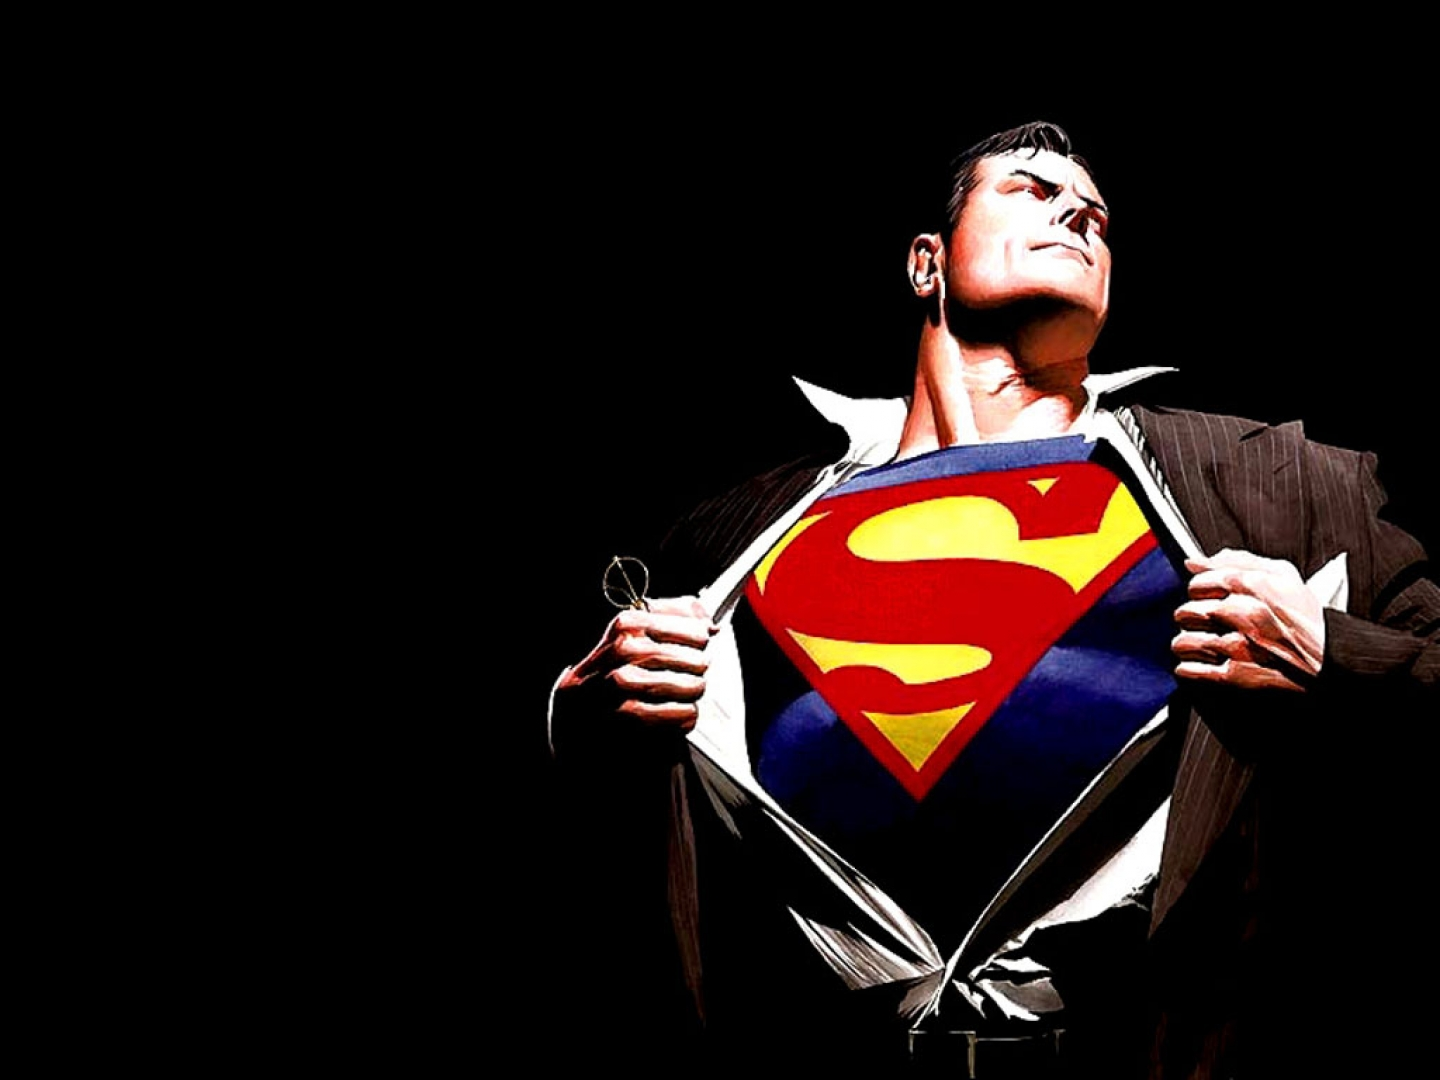 Superman Wallpaper Romantic Desktop For Macbook 200 Backgrounds